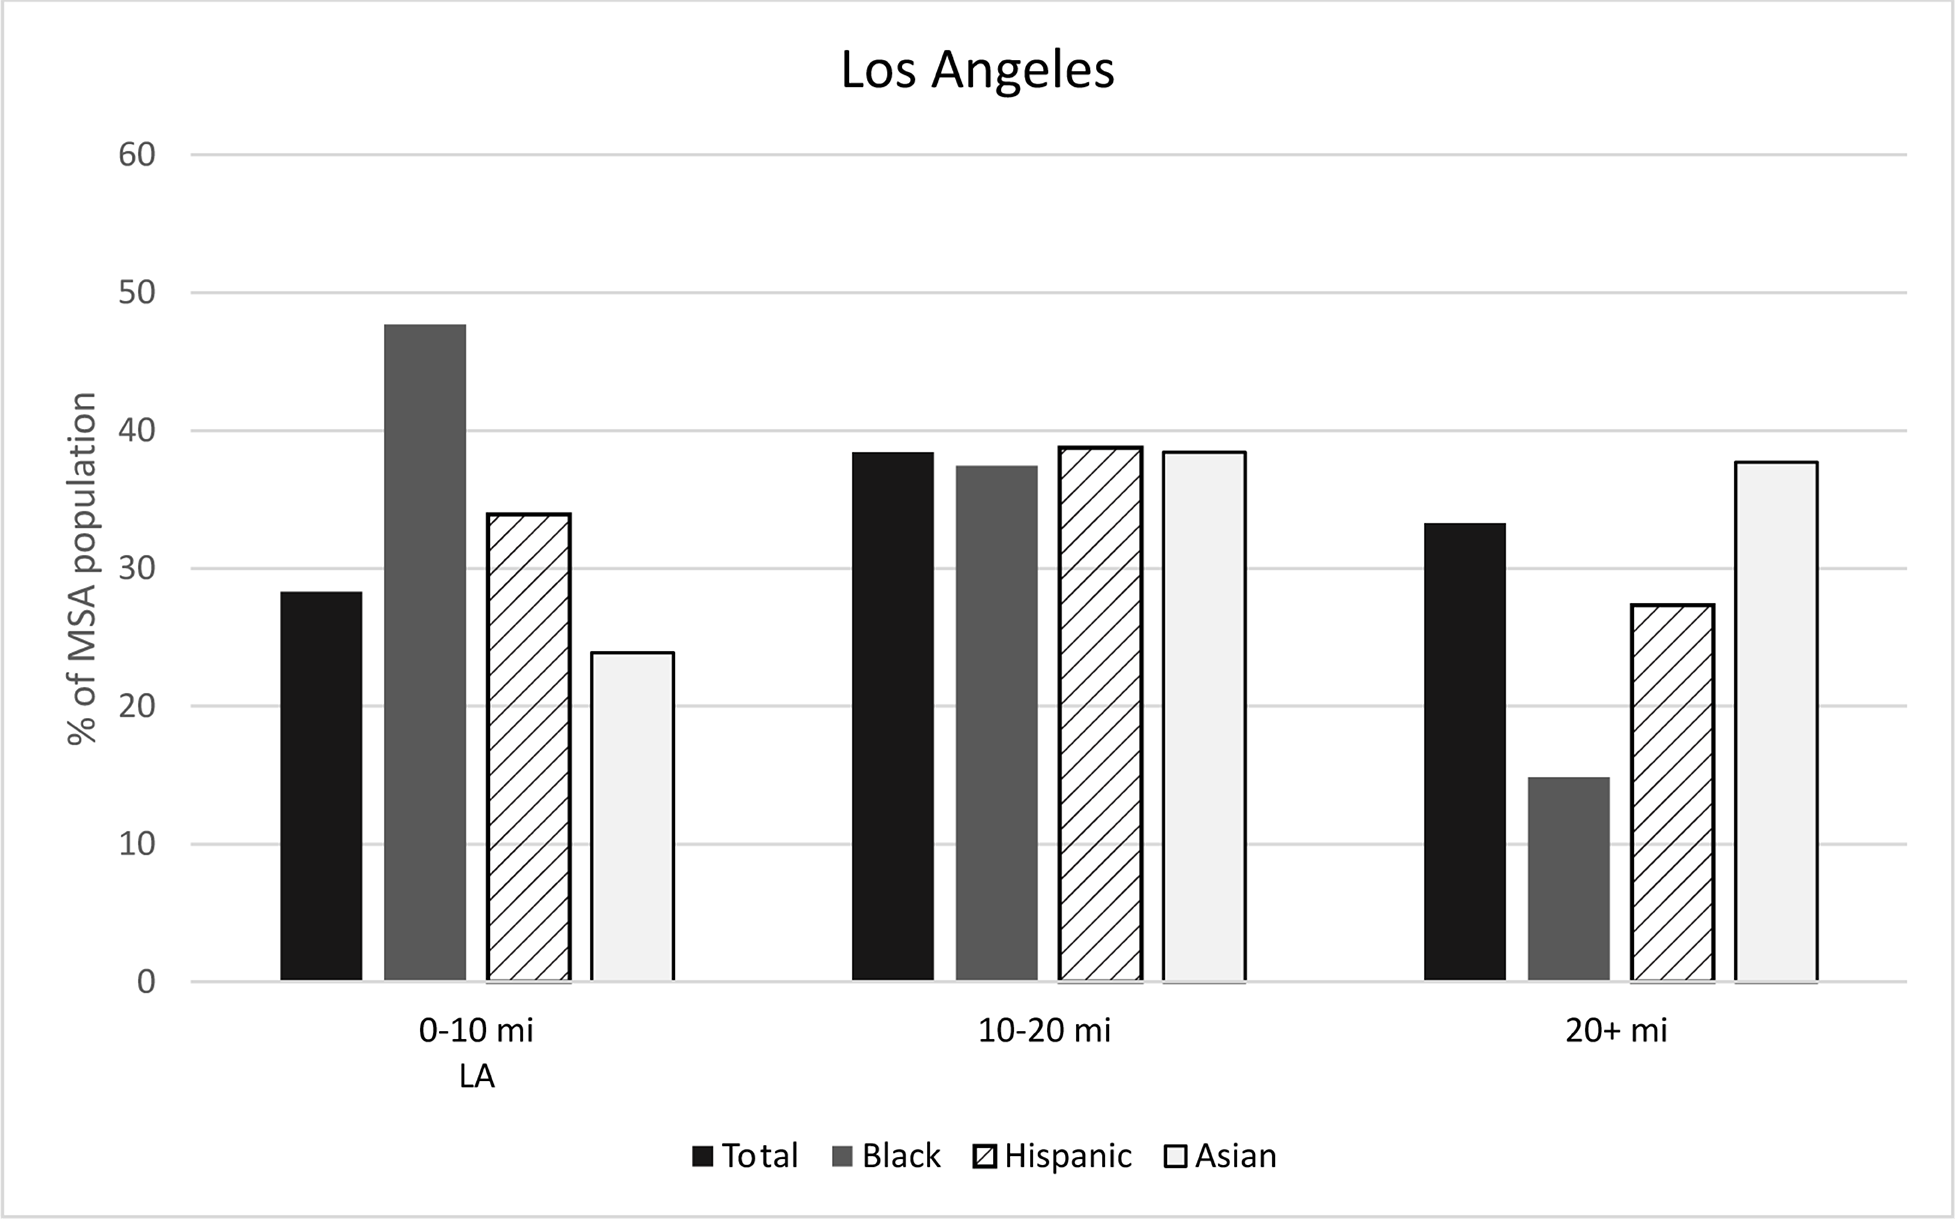 Figure 5: Racial/ethnic concentration by distance to CBD, Los Angeles. See accessible link for data.